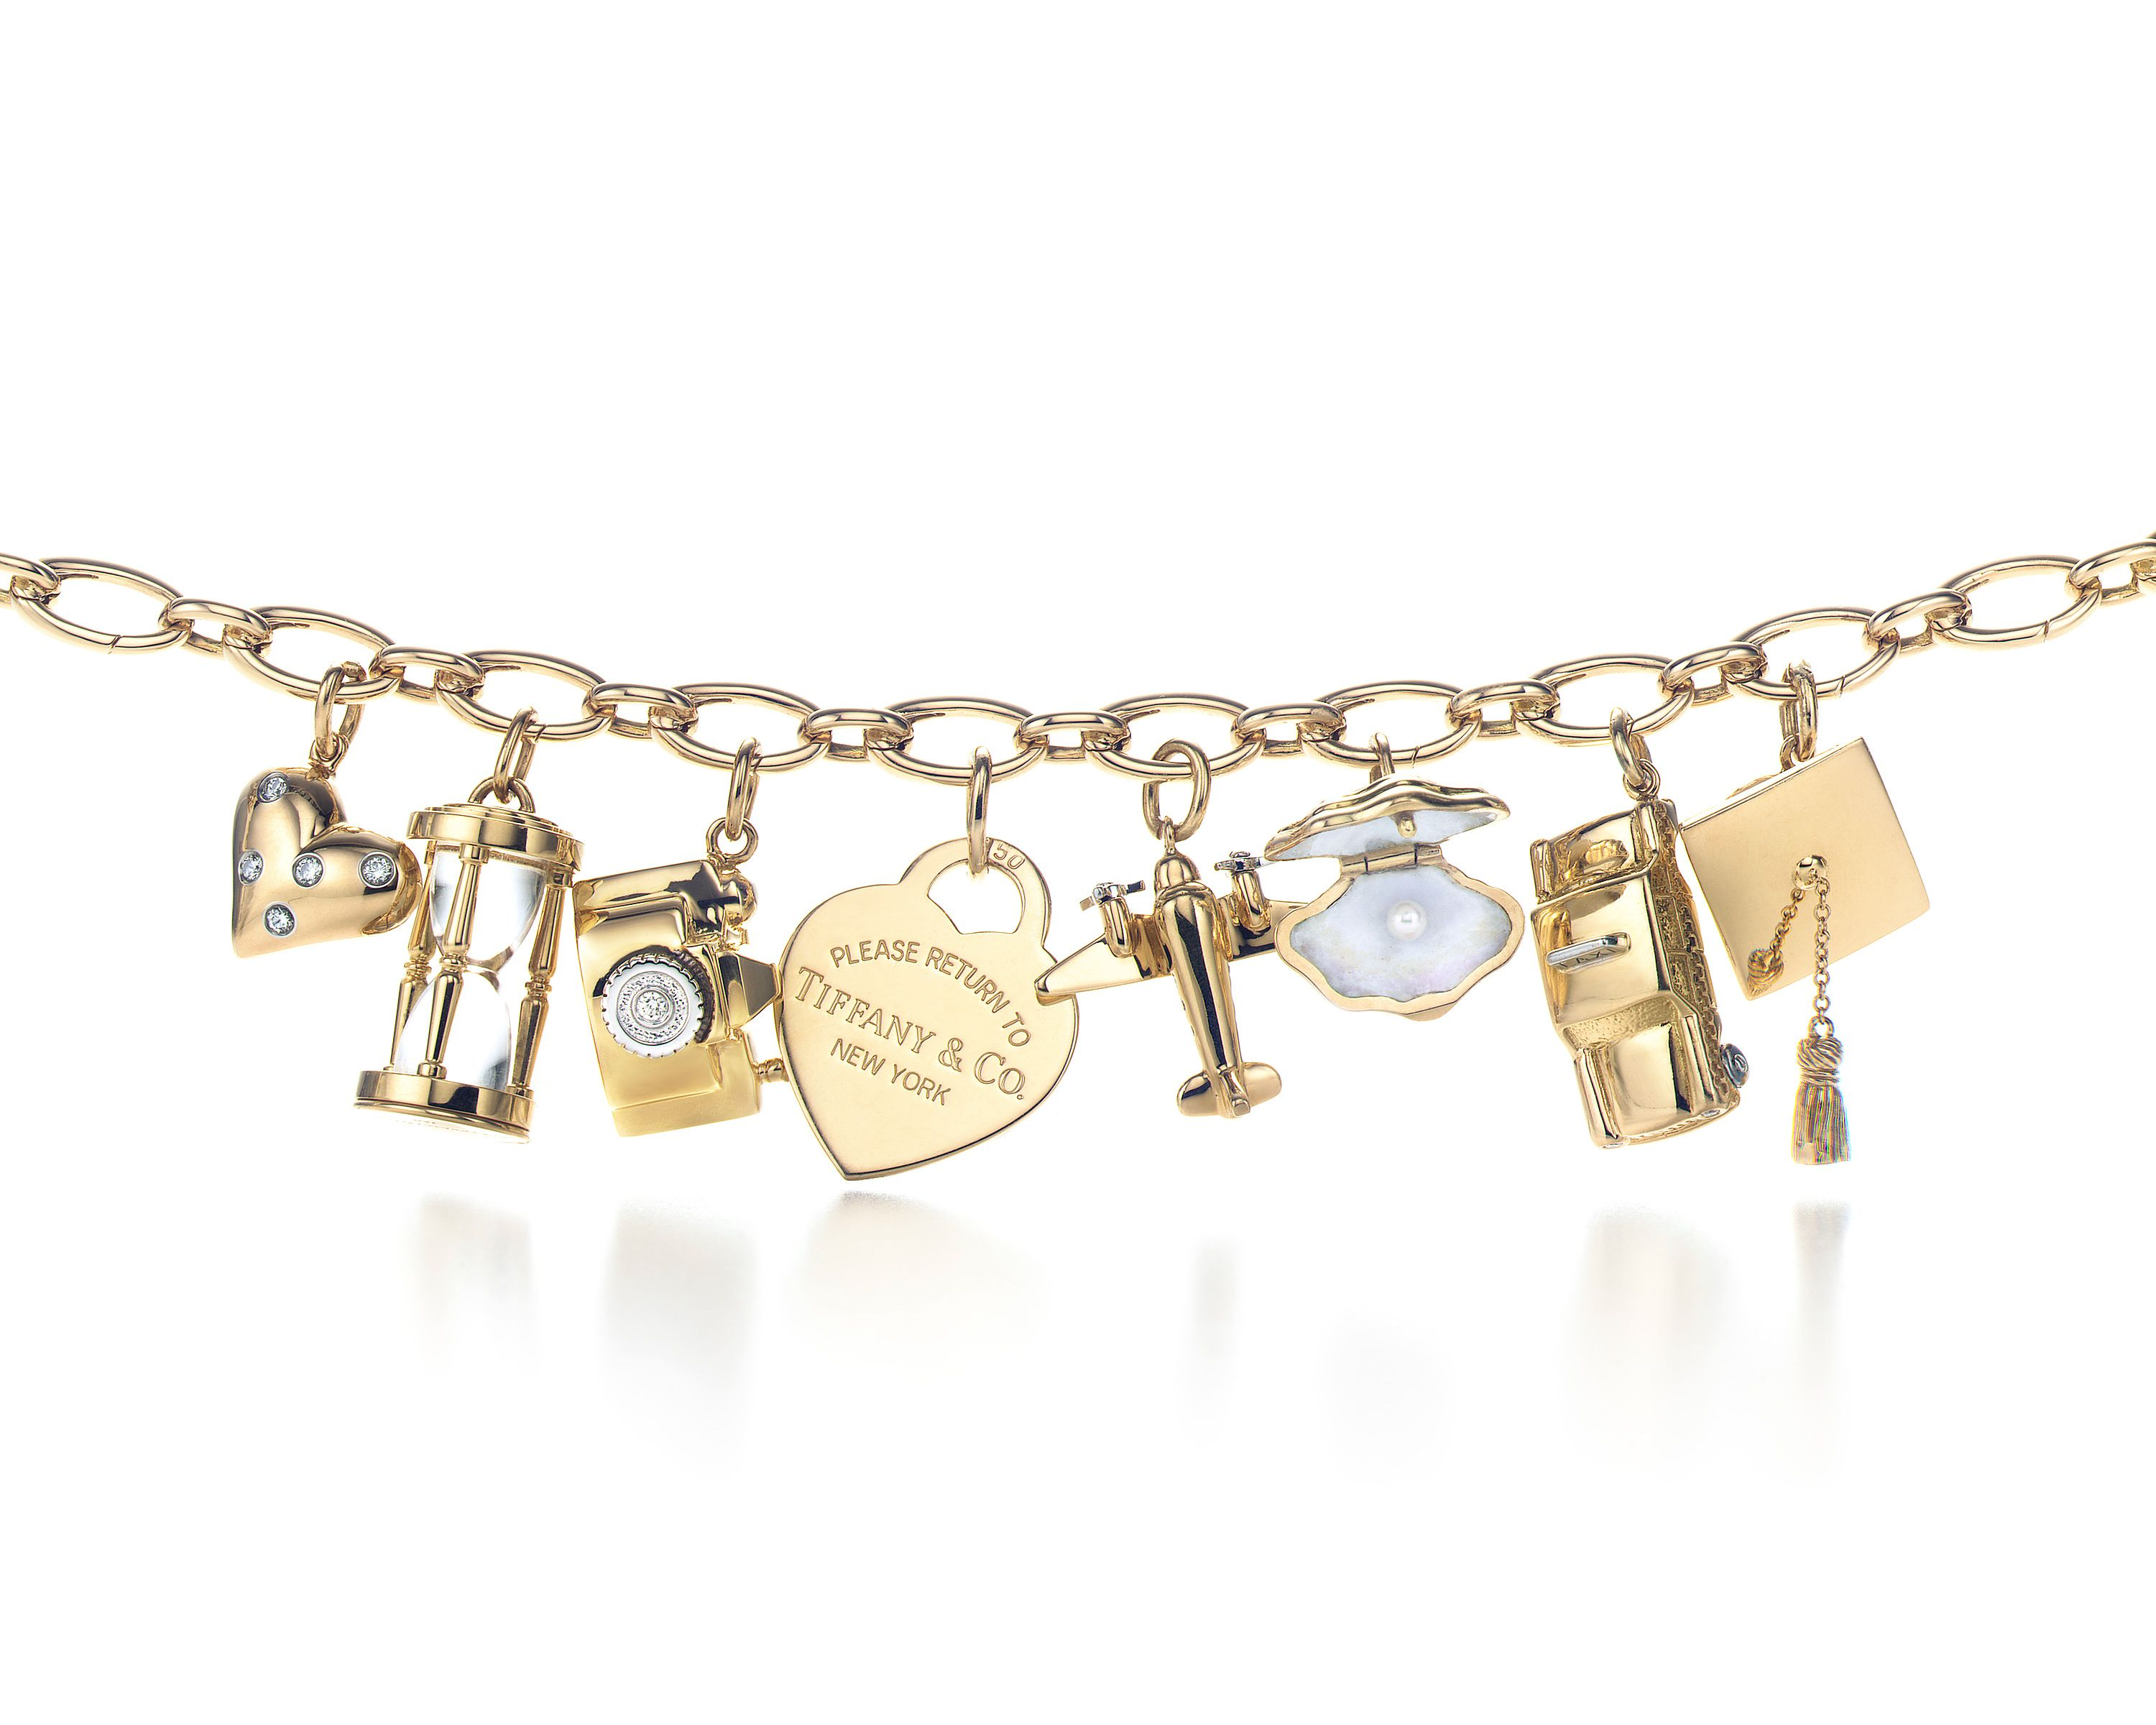 Tiffany Co Charm Bracelet In Gold If I Were To Win The Lottery